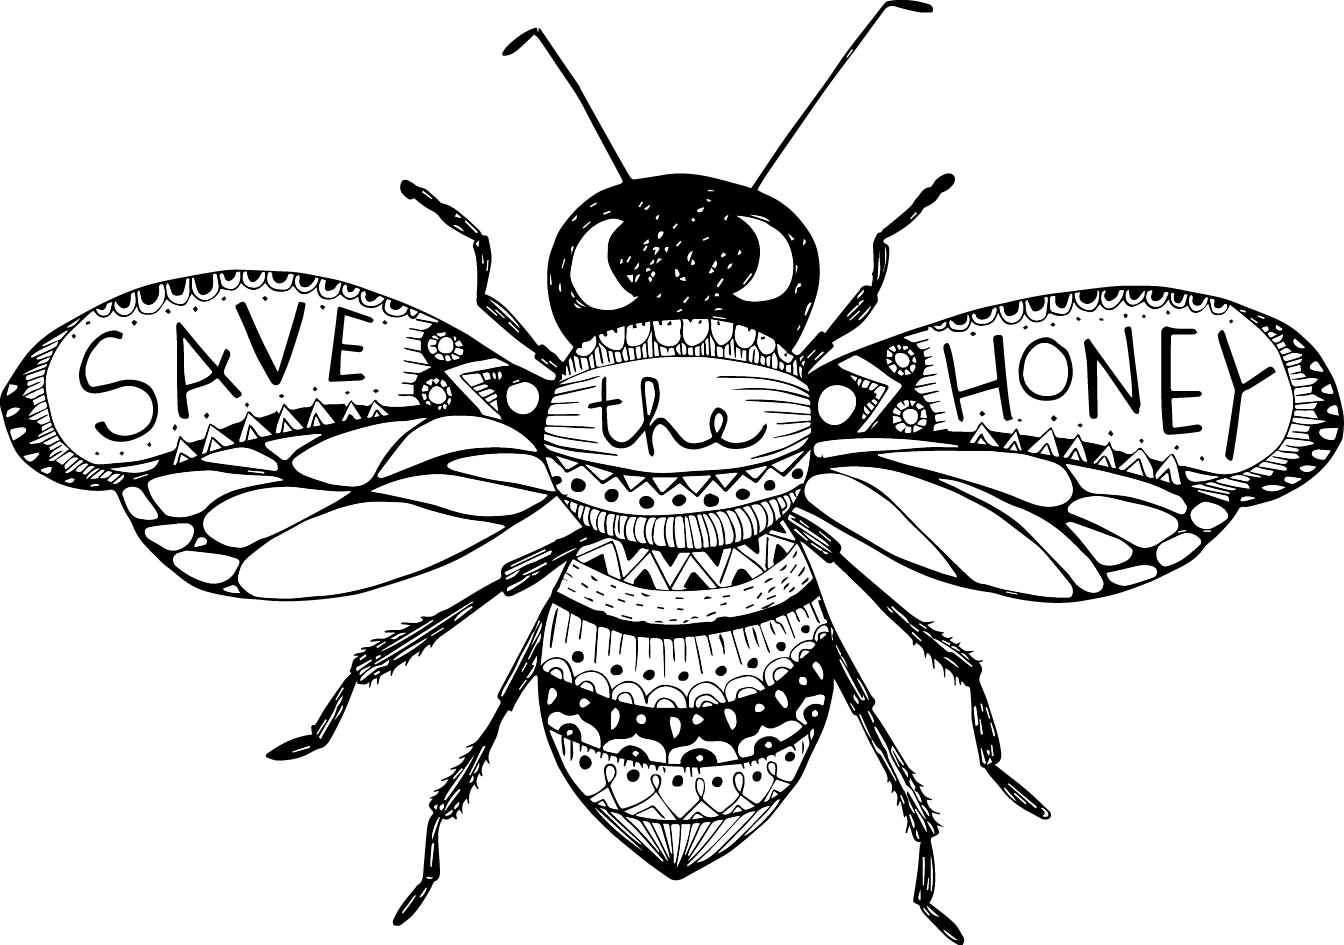 a peachy keen day honey bees love and tee shirts Bees On People also if you re really brave start a bee hive of your own i ve always wanted one but don t have the time or space maybe one day